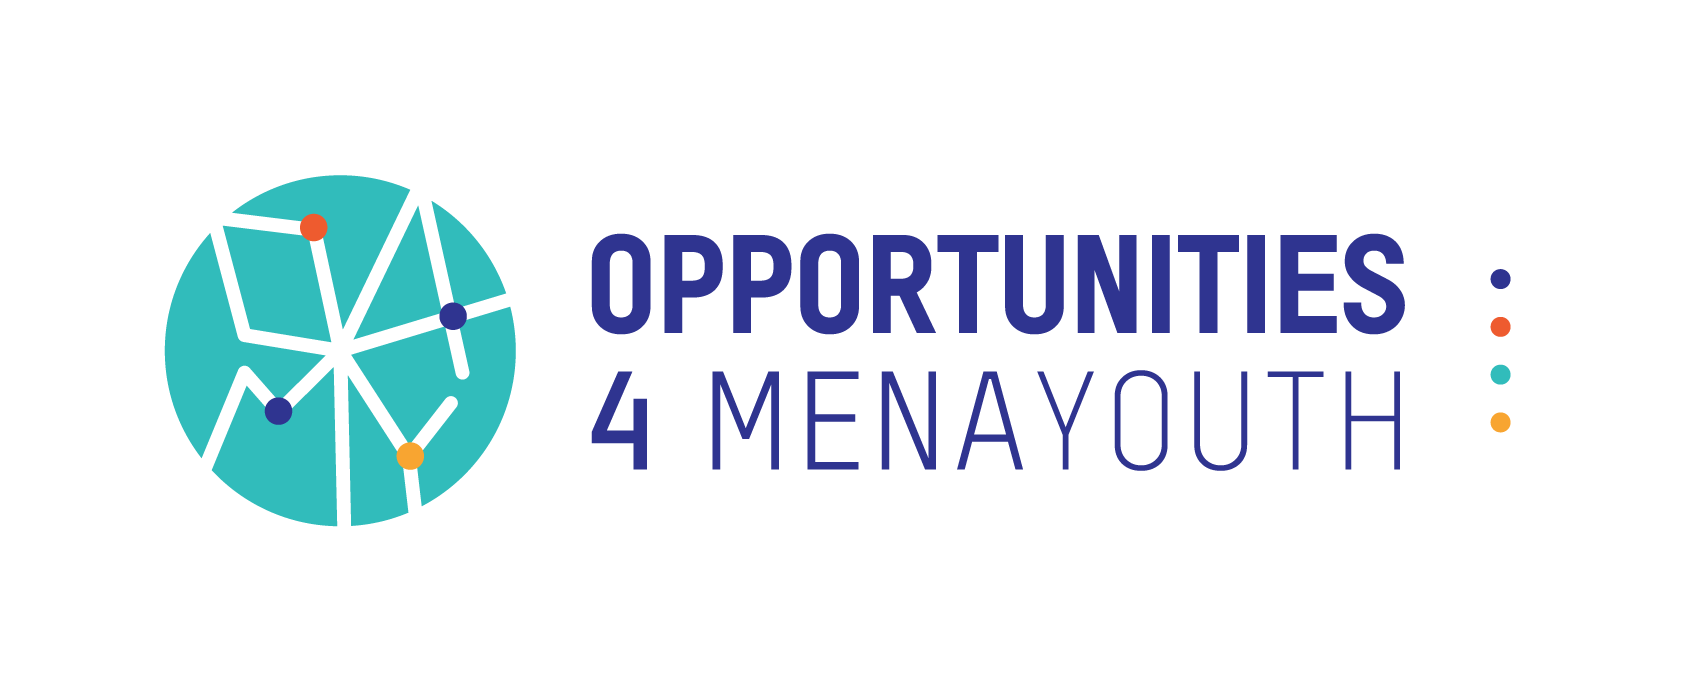 Opportunities 4 MENA Youth